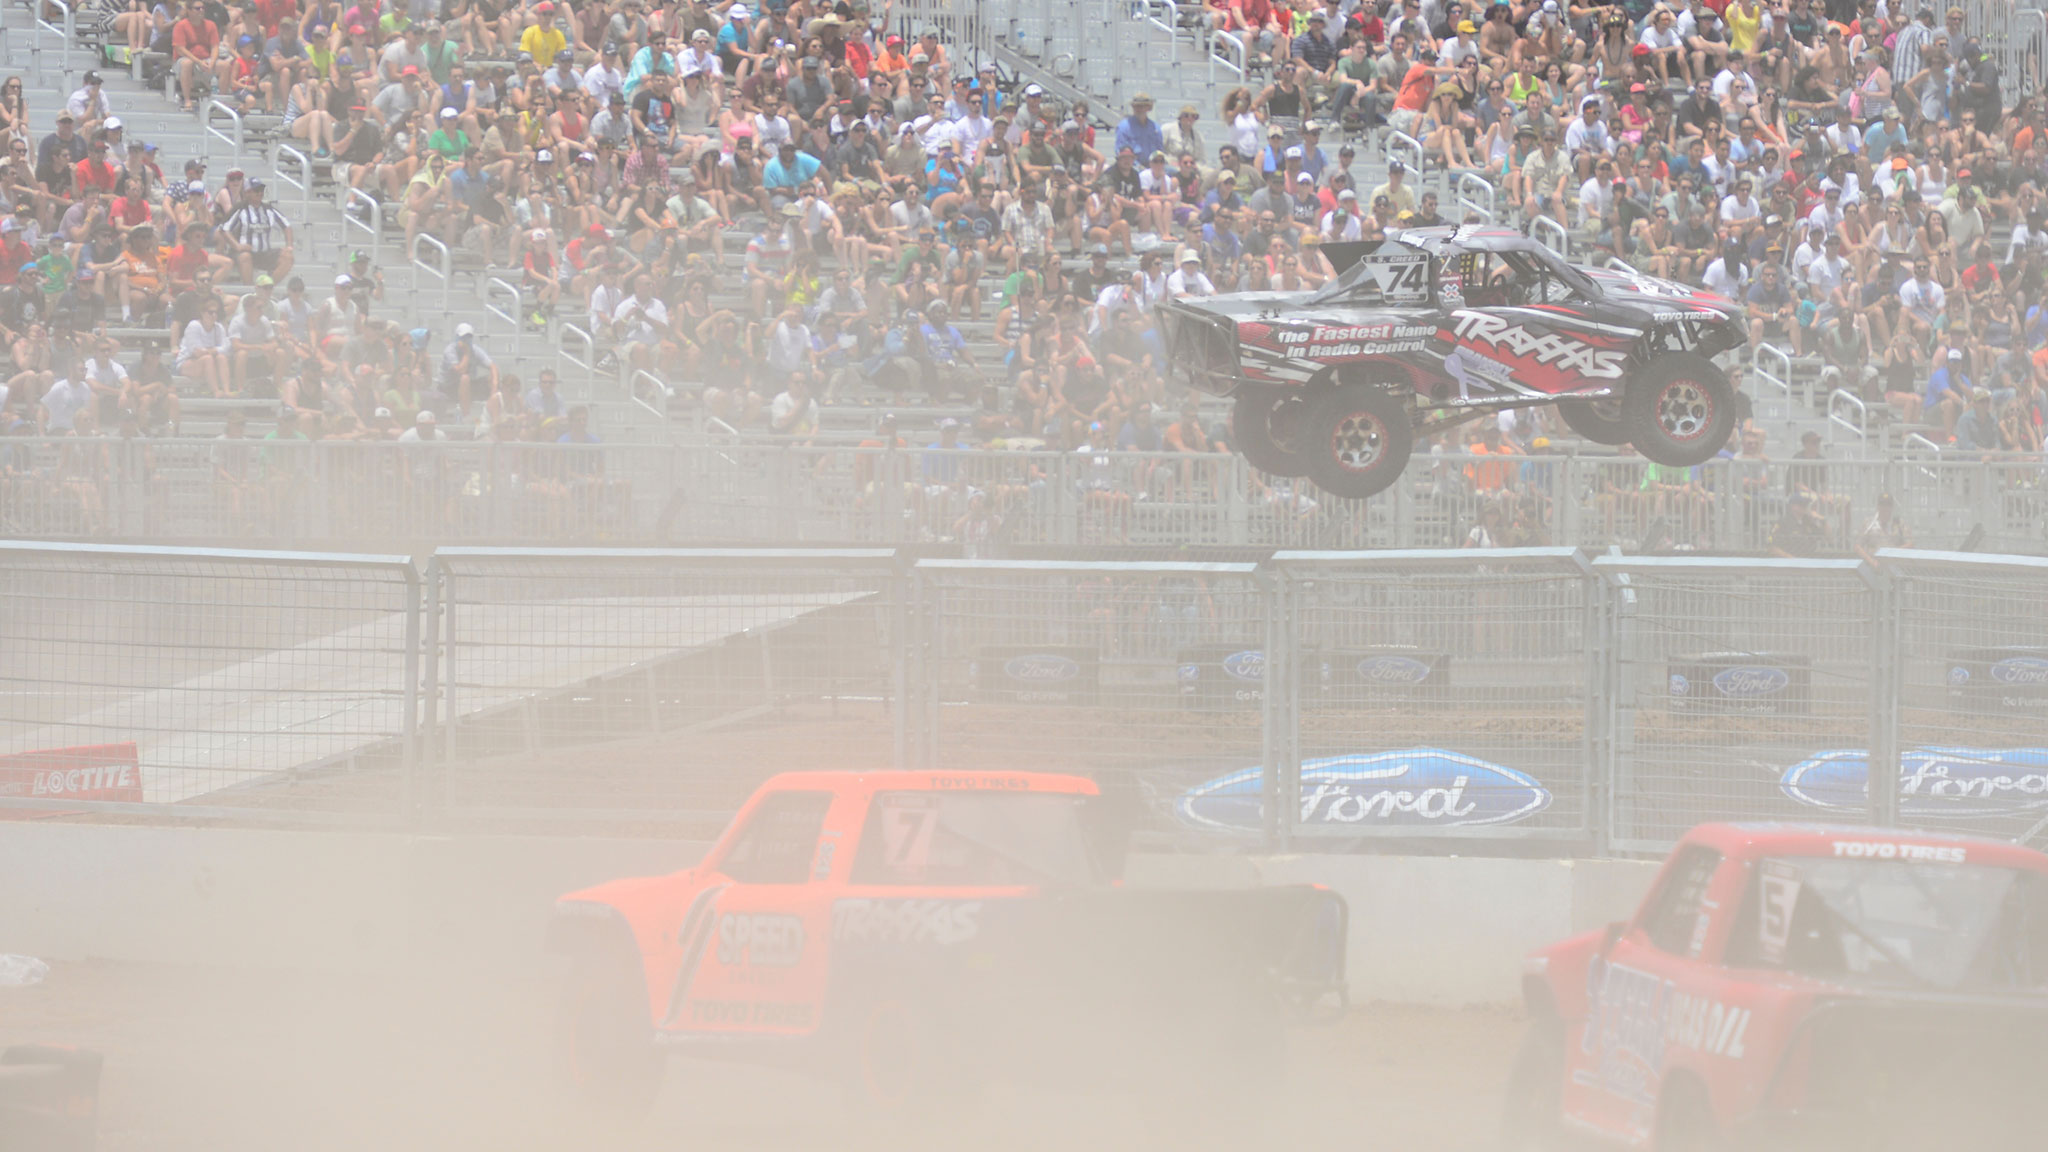 At the debut of Off-Road Truck Racing at X Games Austin 2014, two of the three medalists, and four out of the top five finishers, were teenagers.